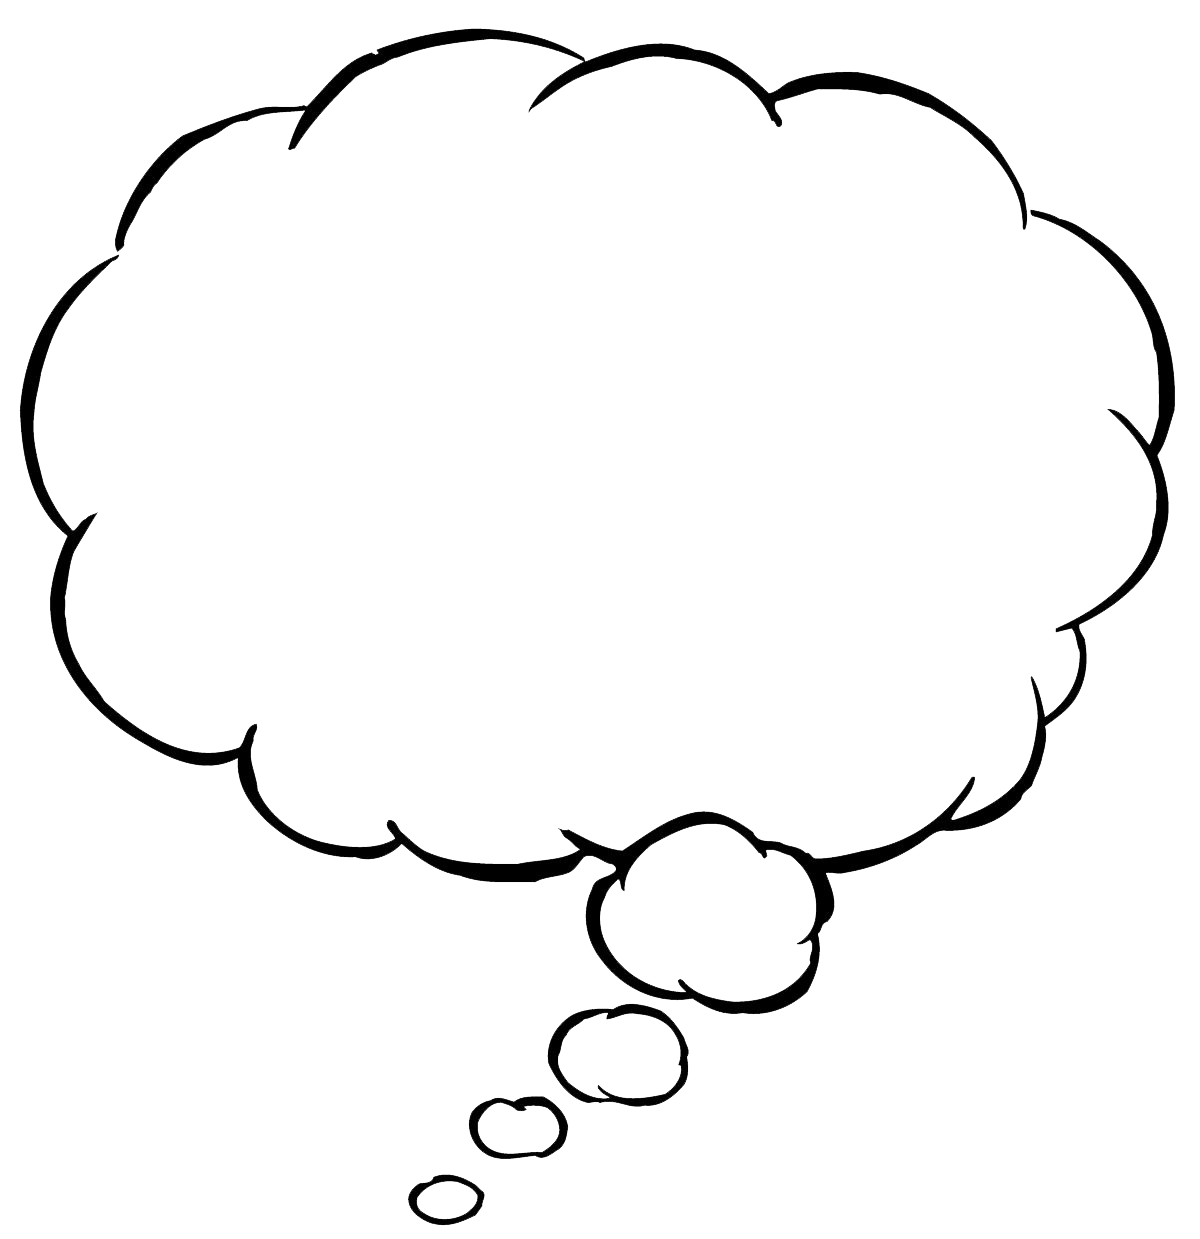 1200x1239 Png Thought Bubble Transparent Thought Bubble.png Images. Pluspng